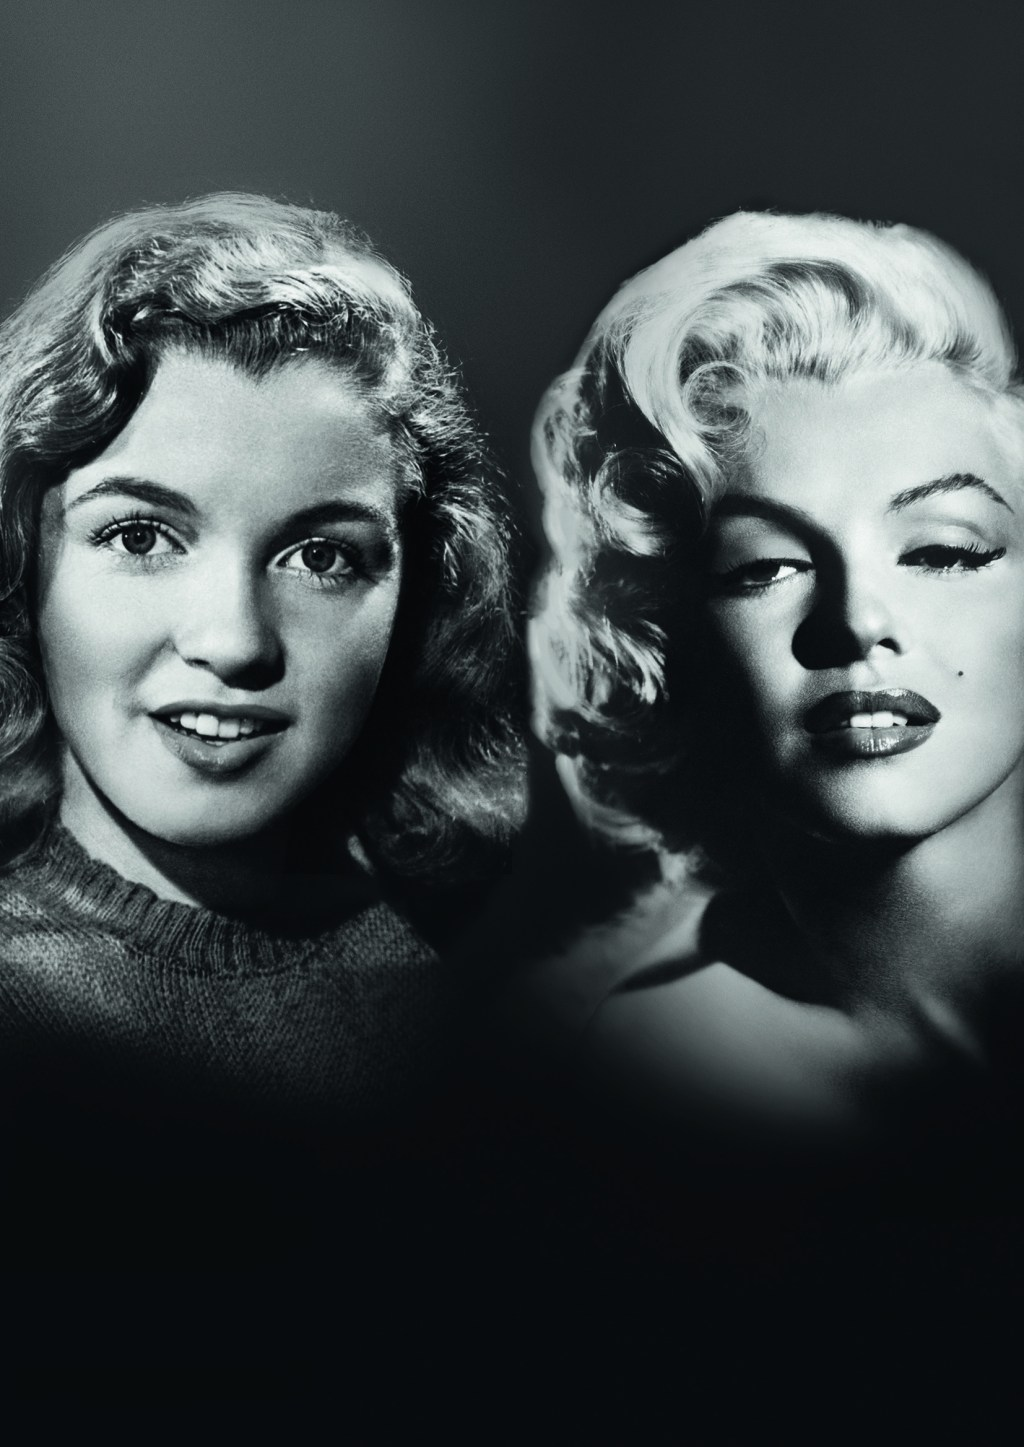 Norma Jeane to Marilyn Monroe.Rights of publicity and personal rights.The estate of Marilyn Monro